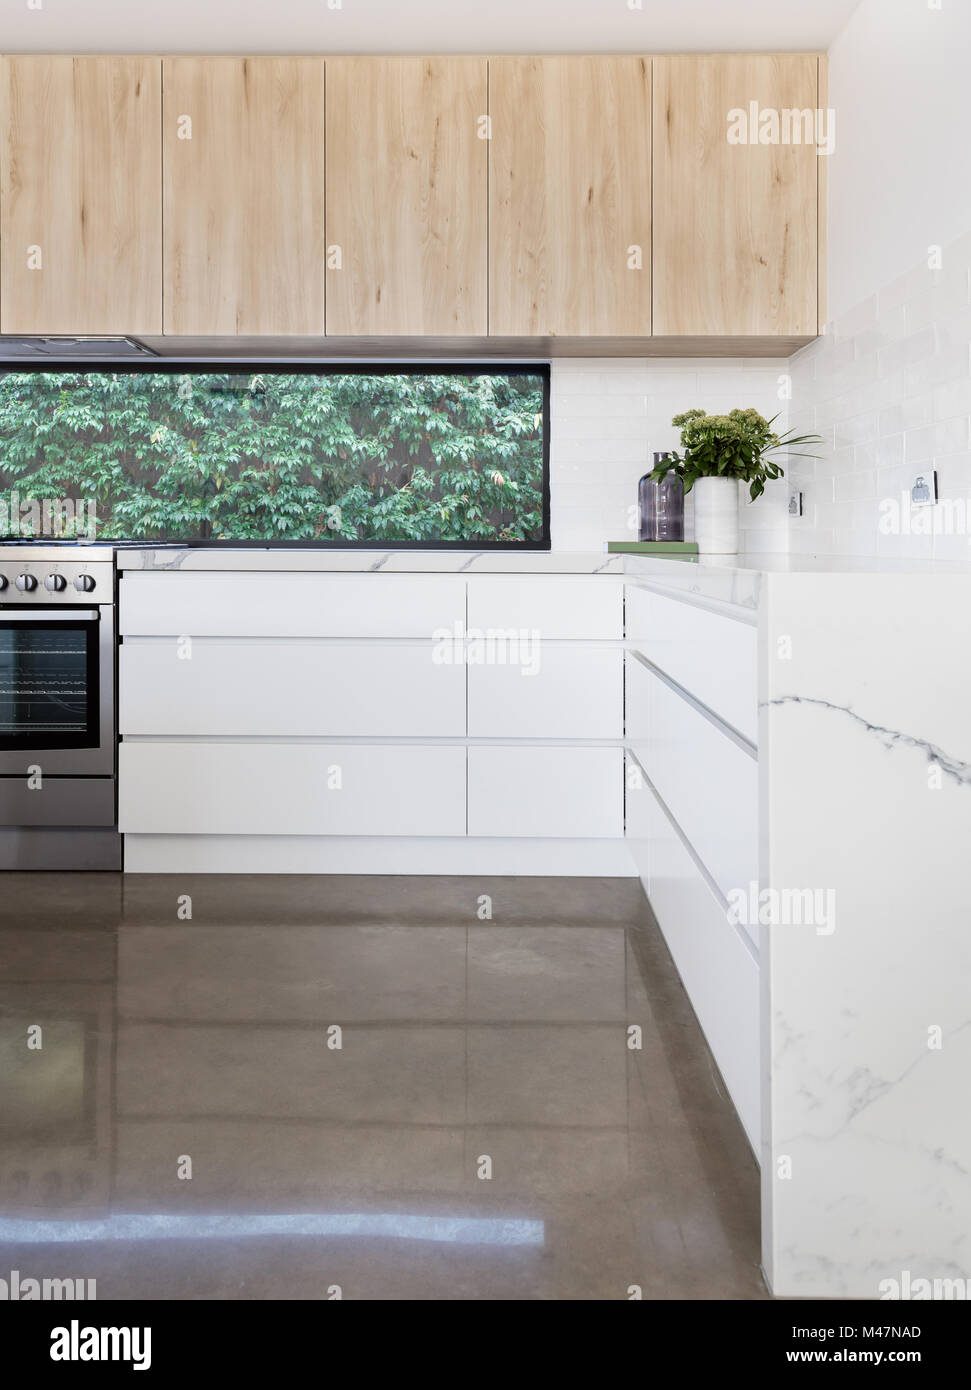 Kitchen details of concrete floor and oversized soft close drawers - Stock Image